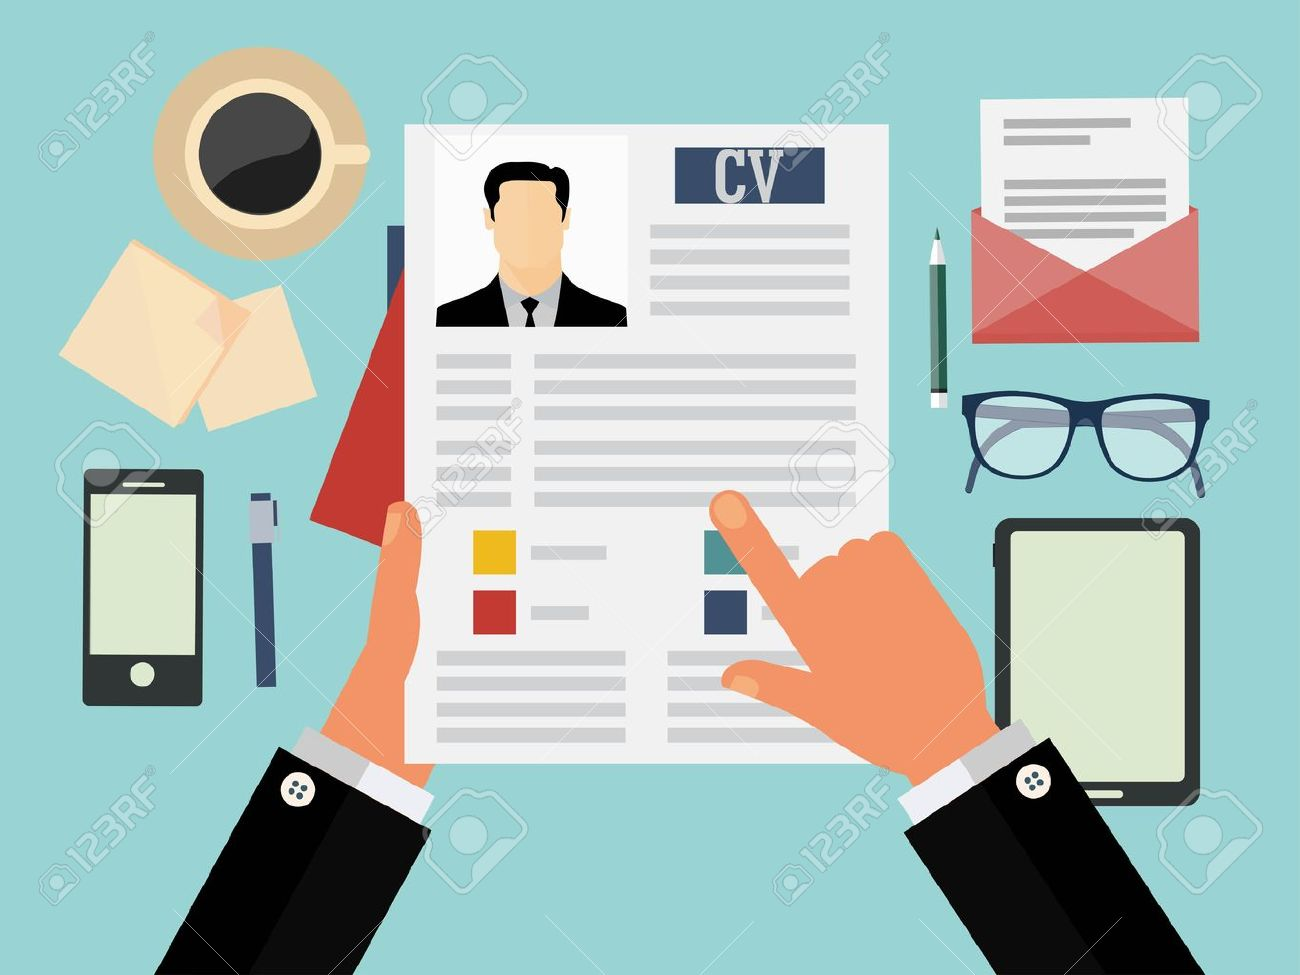 Job Interview Concept With Business Cv Resume Royalty Free Cliparts Vectors And Stock Illustration Image 36762097